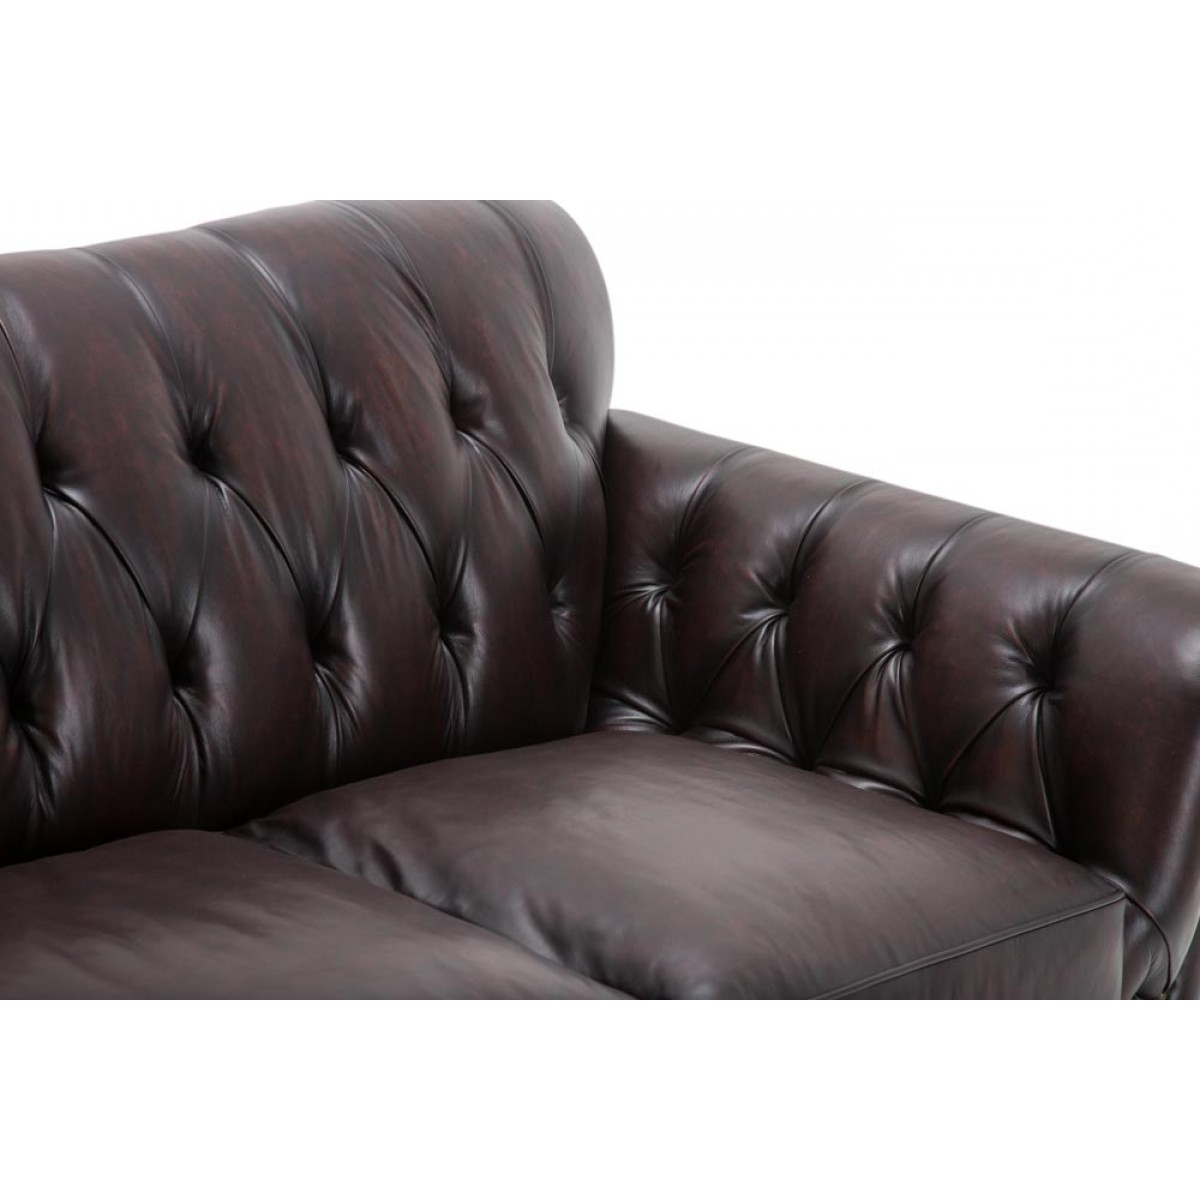 Most Up To Date Aico Michael Amini Freestanding Kensington Leather Love Seat In Merlot For Marcus Oyster 6 Piece Sectionals With Power Headrest And Usb (View 13 of 20)